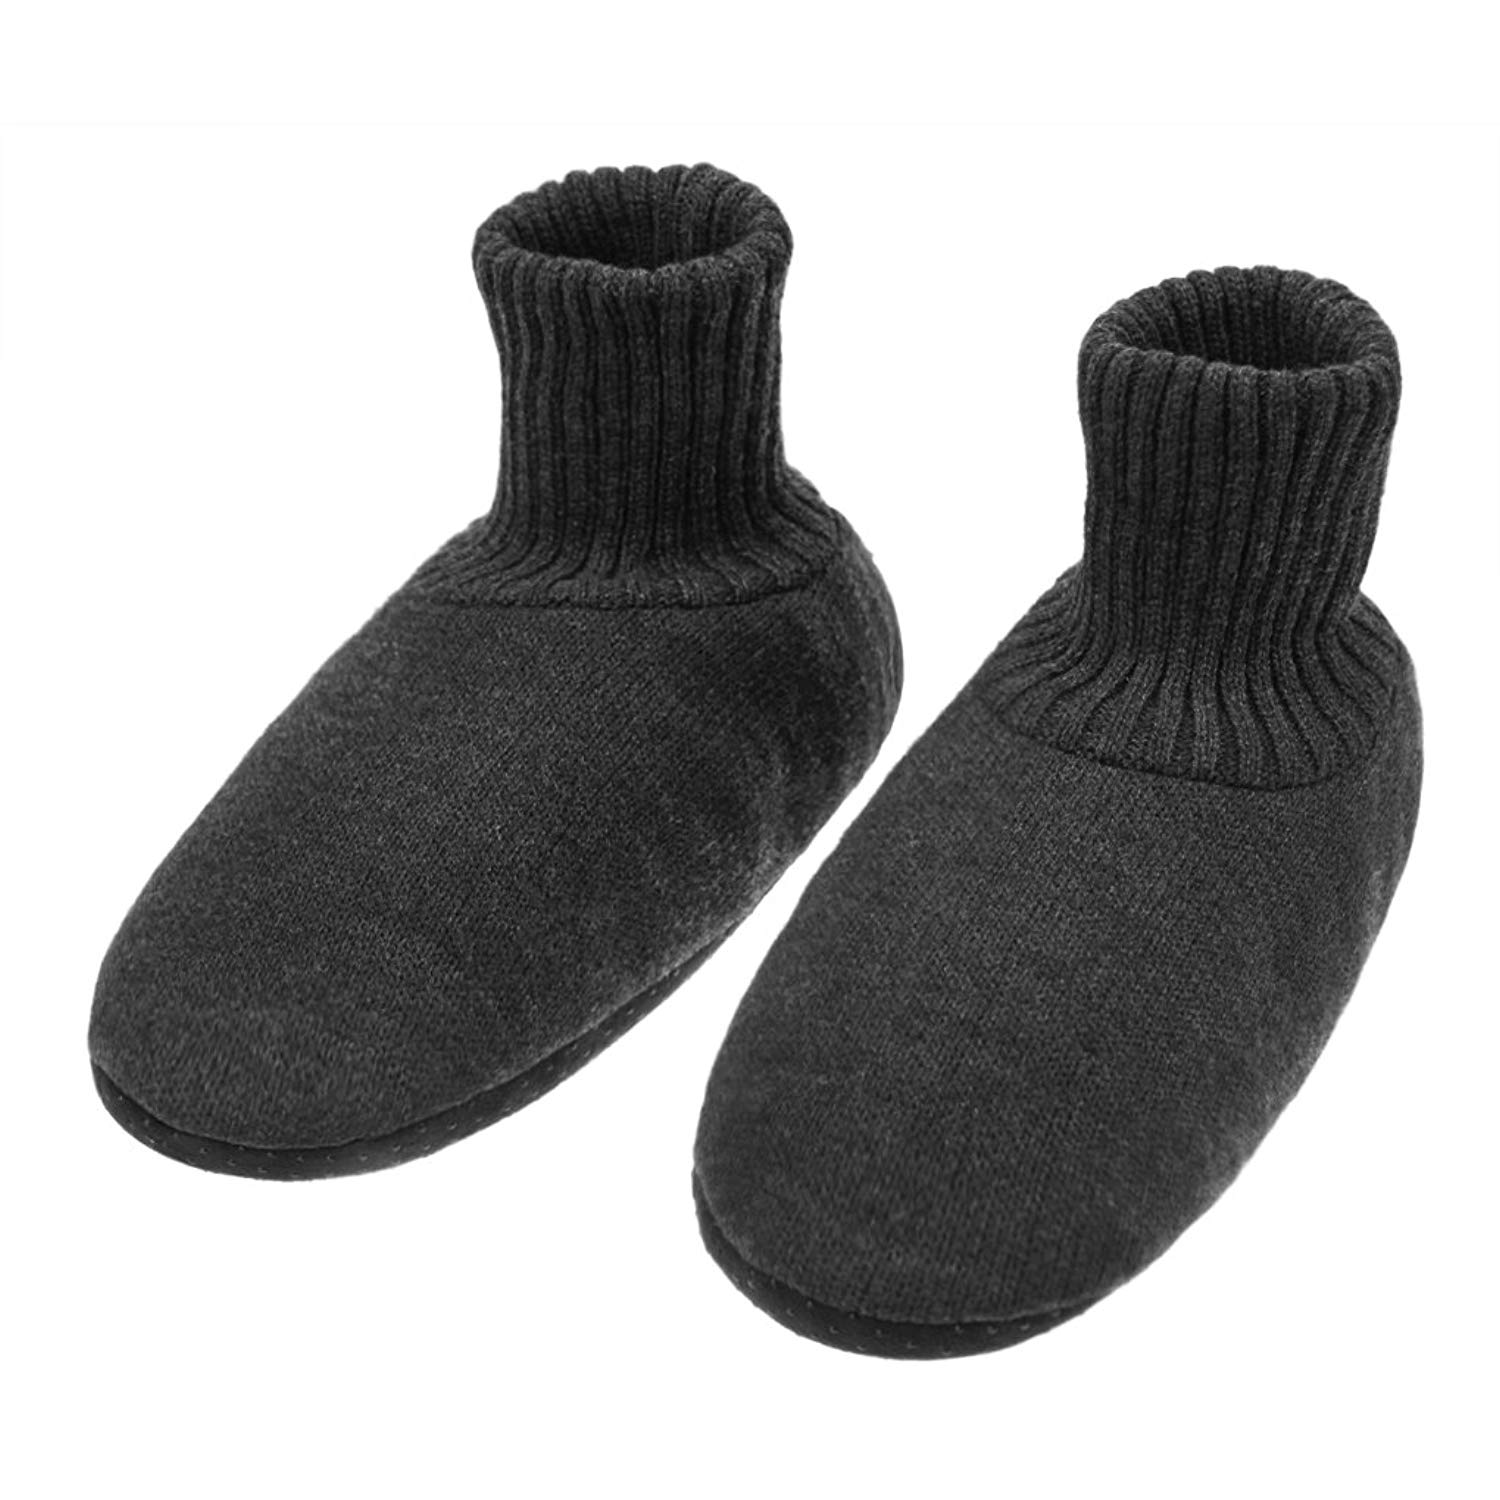 9f41bd529173 Winter Warm Cozy Slipper Socks for Women Men Soft Thick Fleece Lined Cable  Knit Indoor slippers